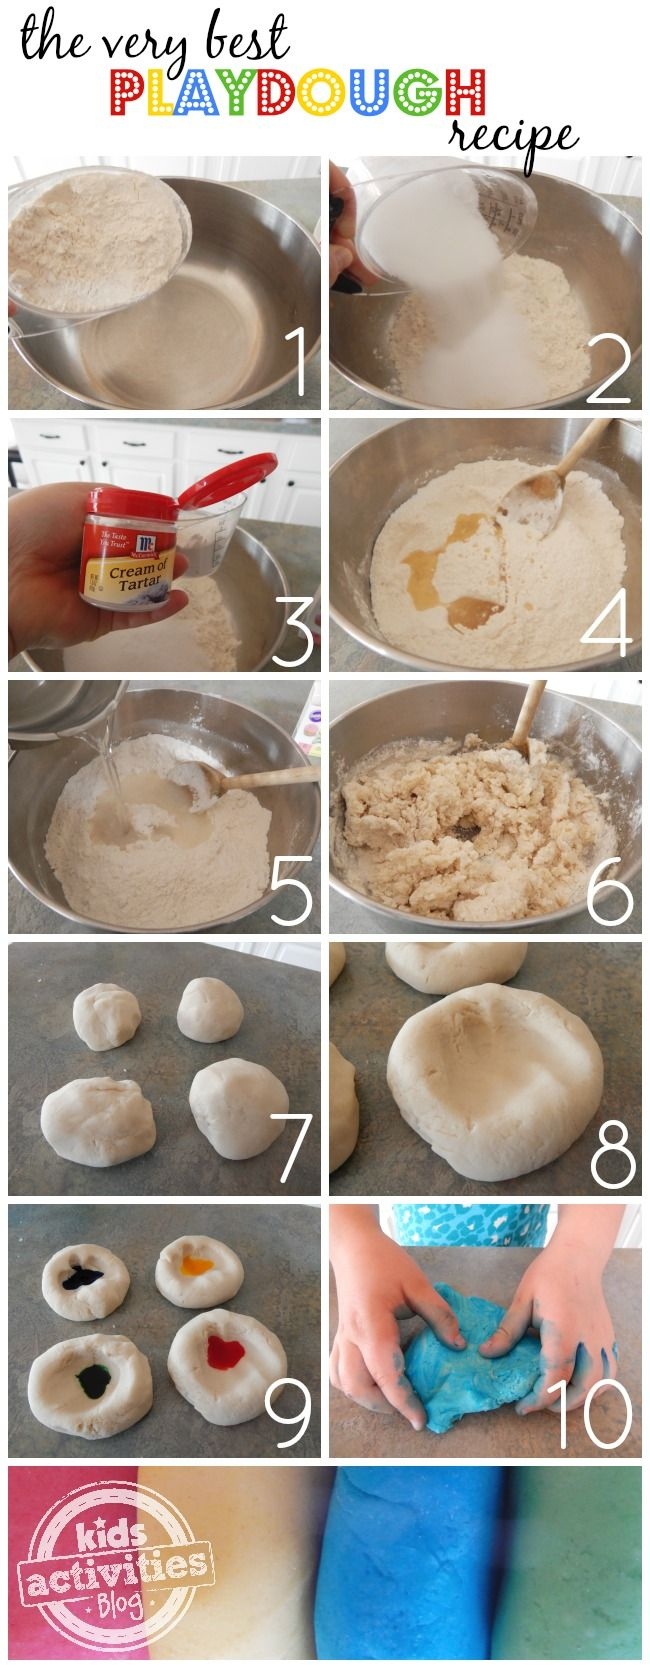 The very best play dough recipe.